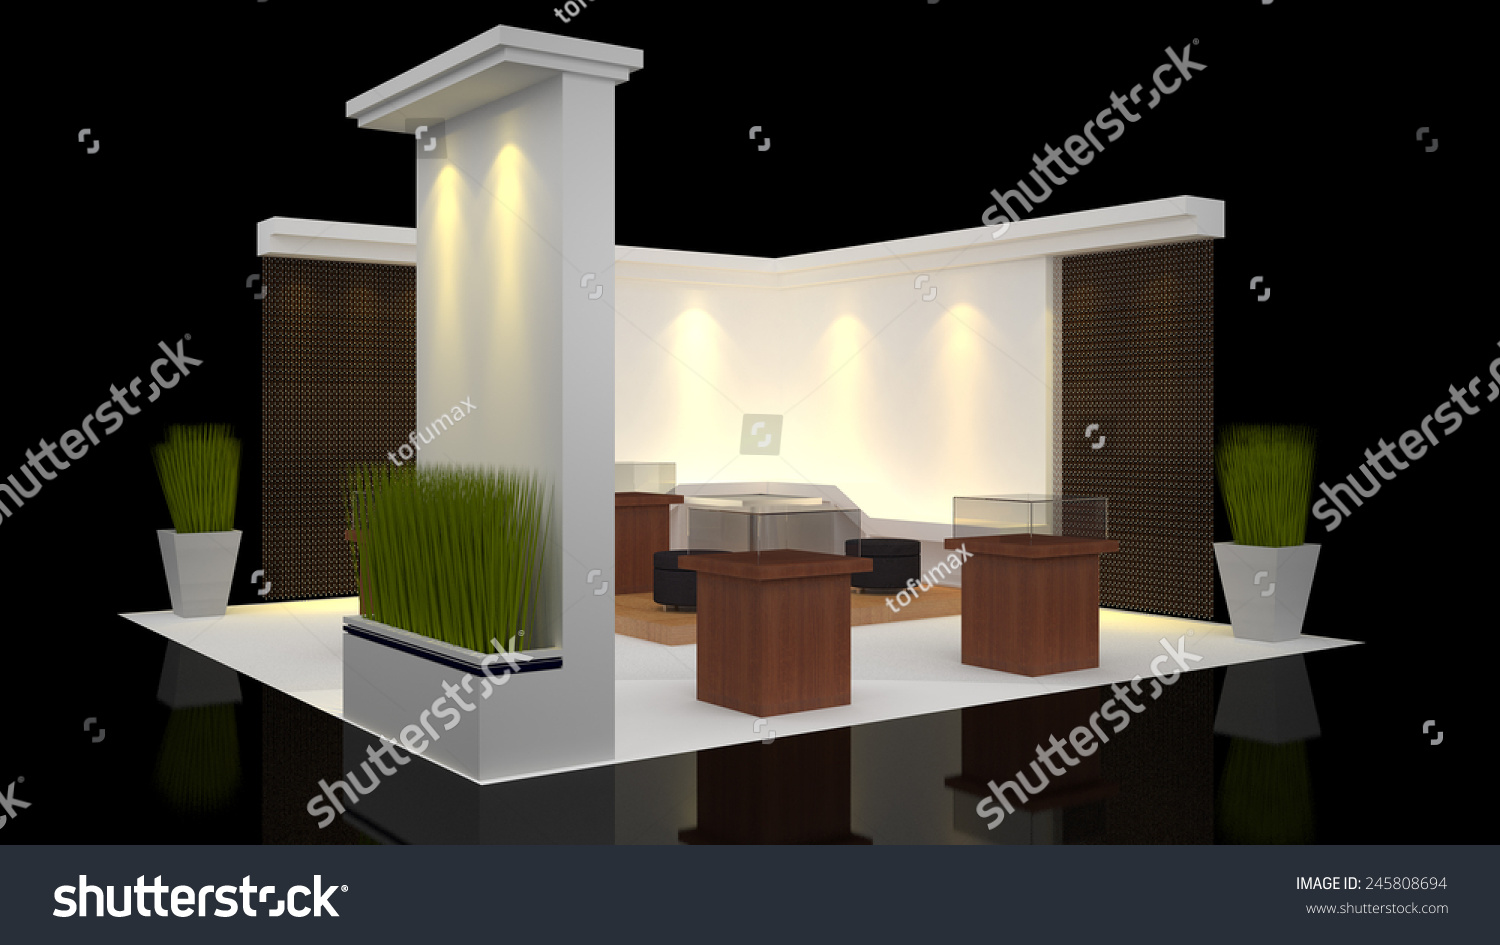 Exhibition Stall Design Vector Free Download : Modern booth exhibition design blank banner stock